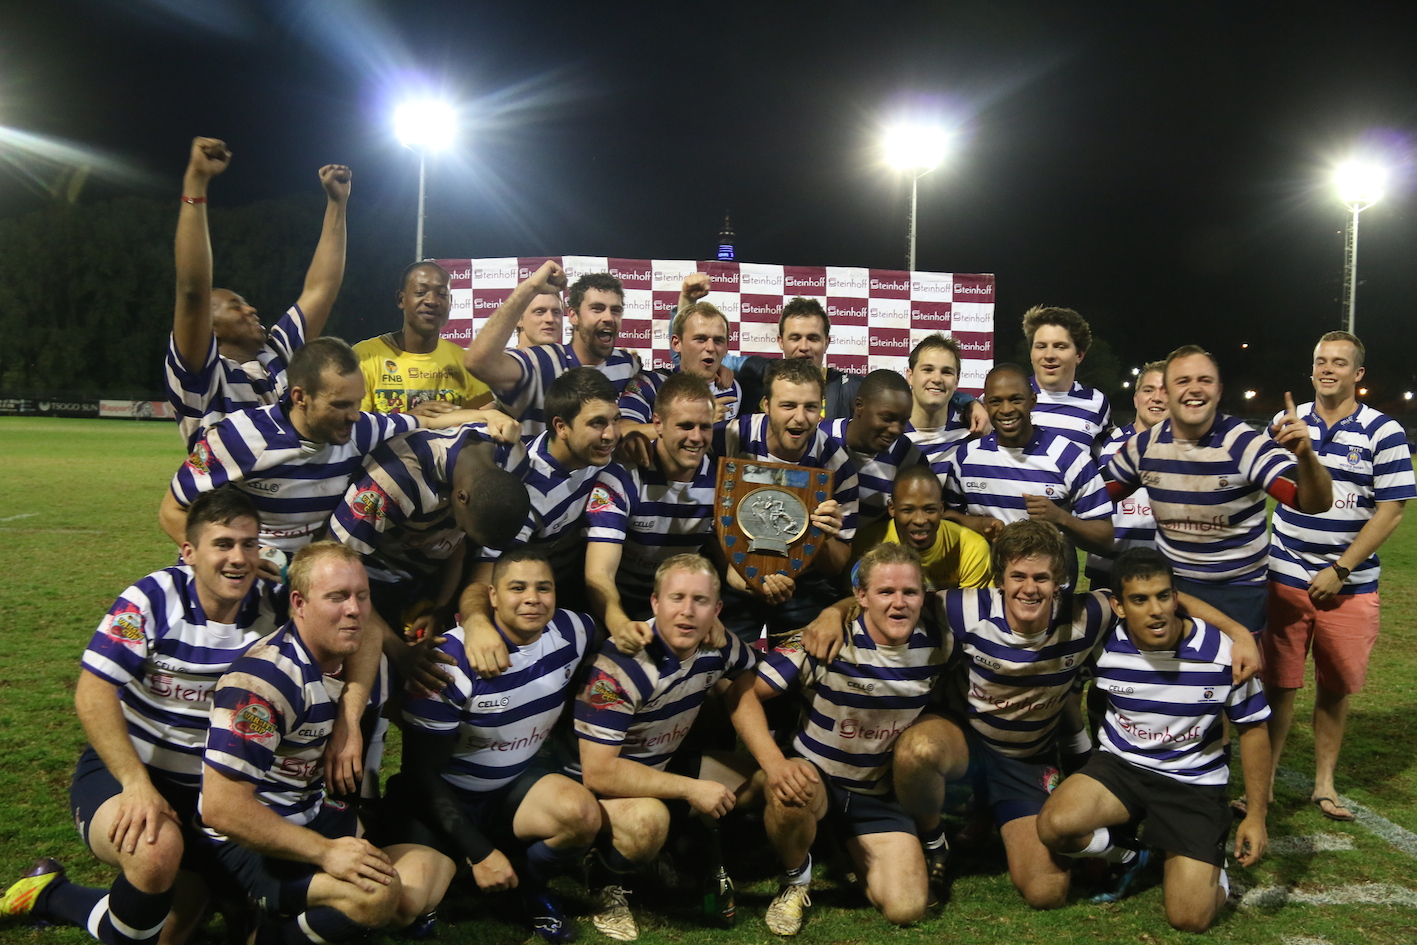 RUGBY: Victory for Medics after 10-years of trying